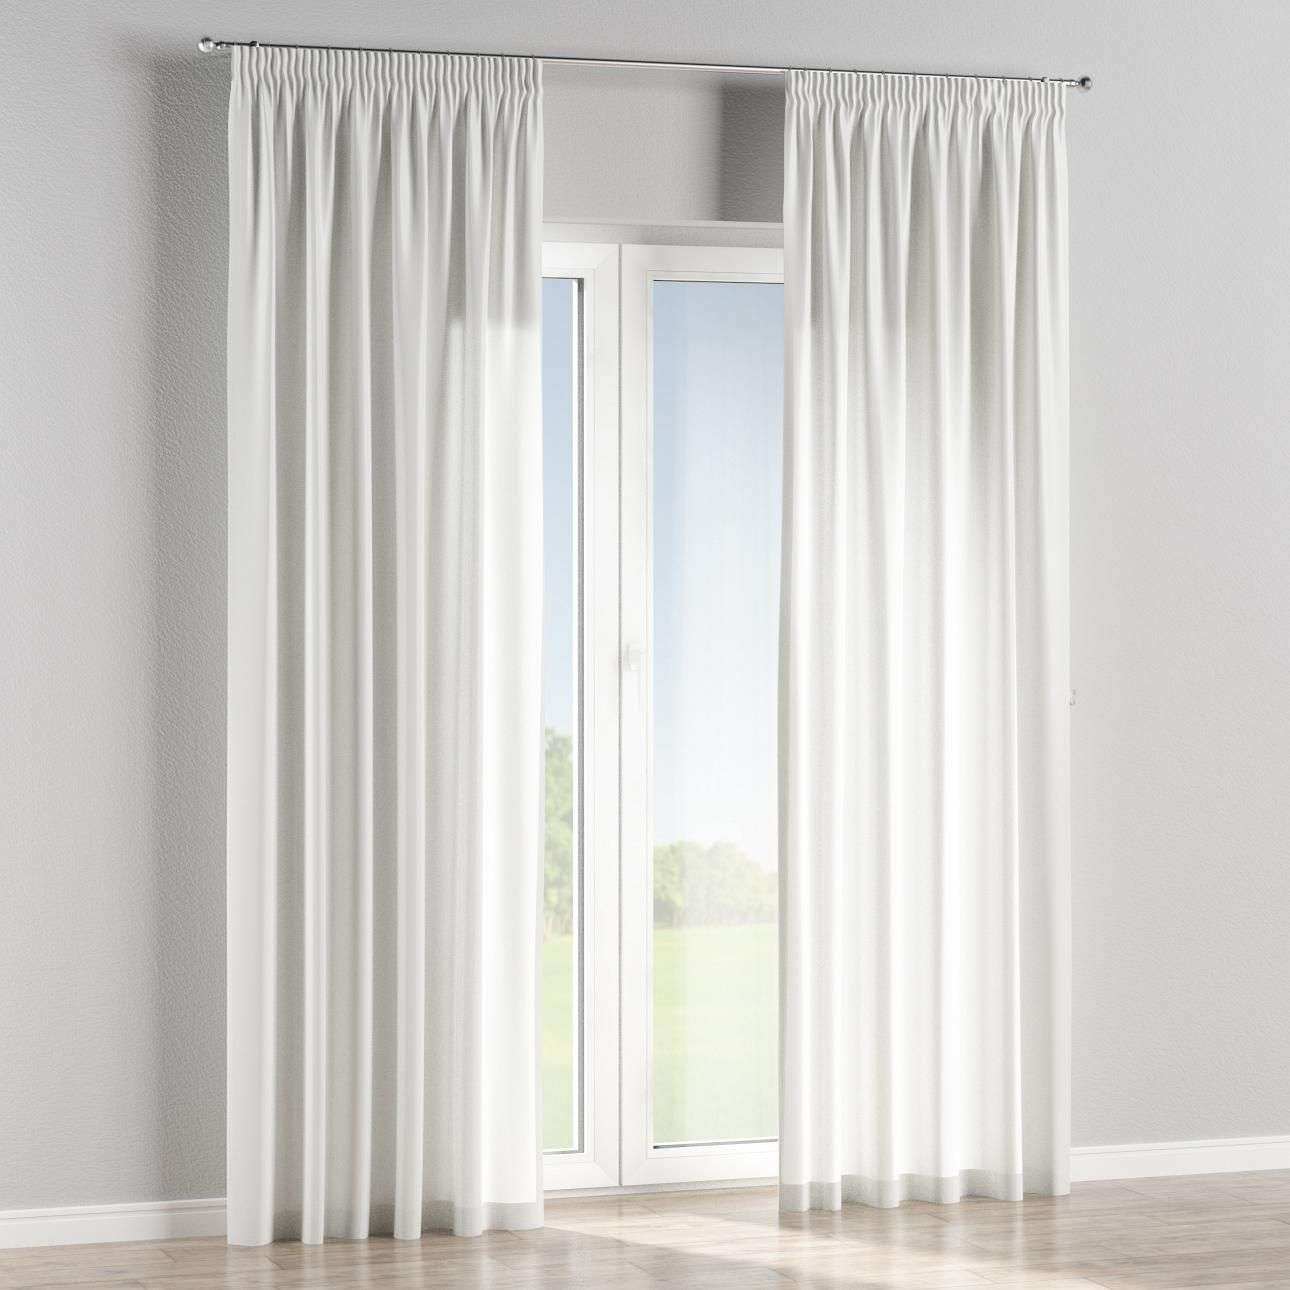 Pencil pleat curtains in collection Norge, fabric: 140-78